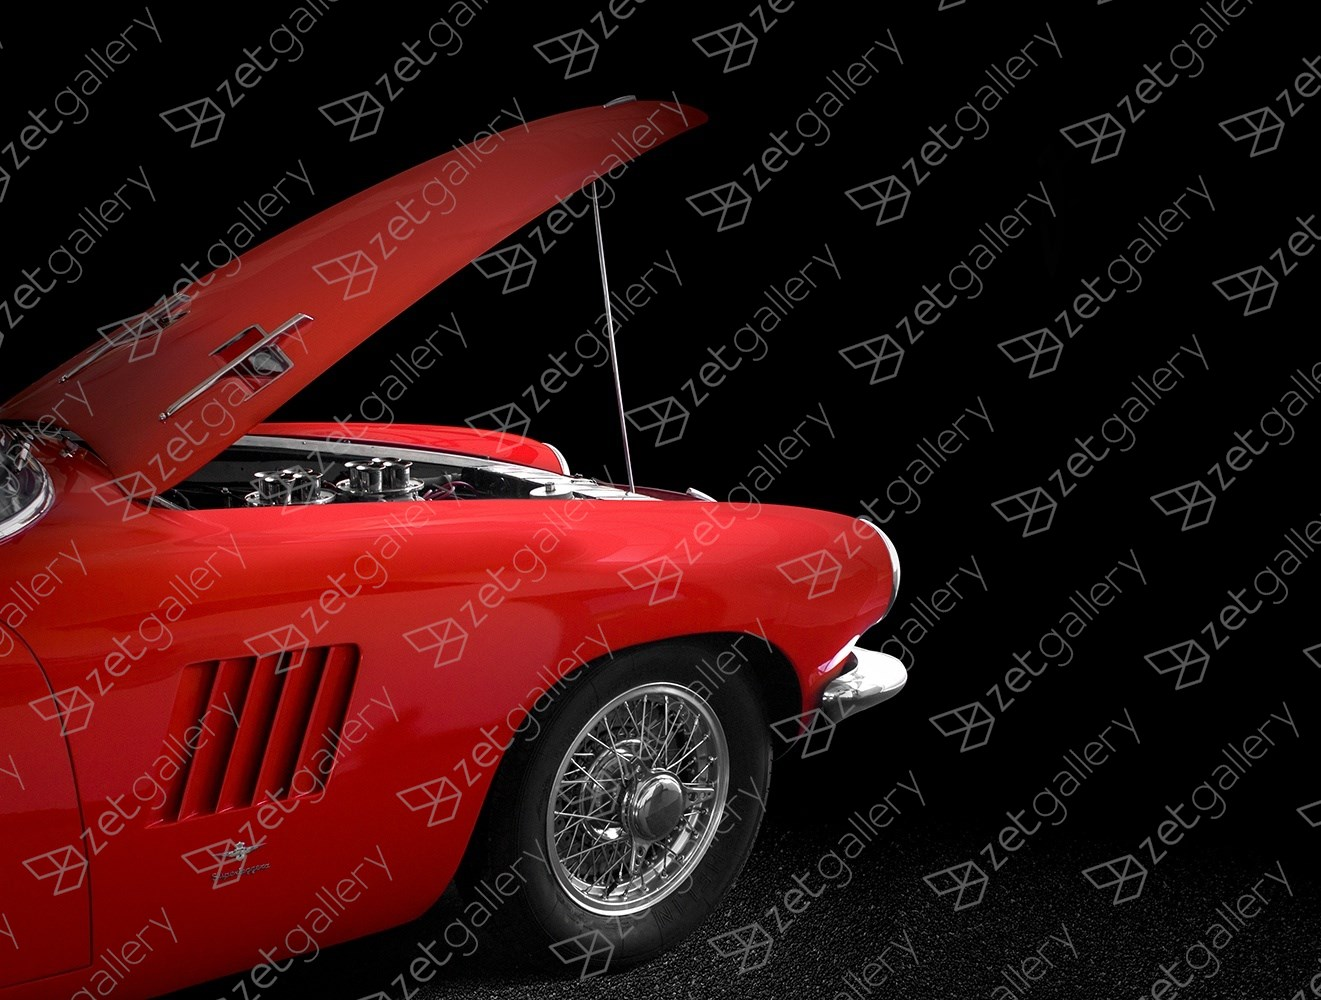 Pegaso Z103 01, original Avant-Garde Digital Photography by Yggdrasil Art